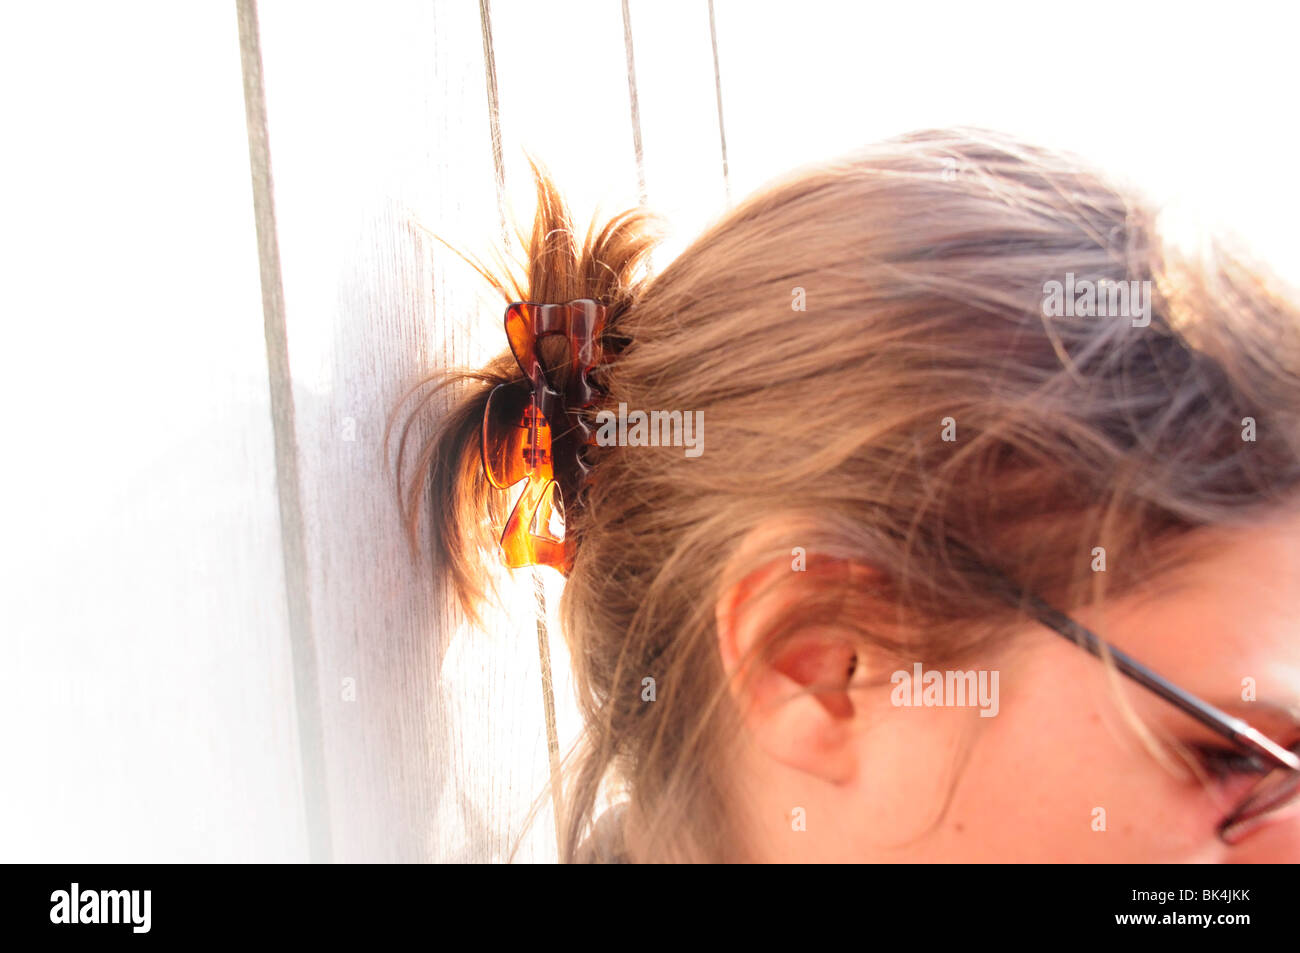 Profile of womans head and hair in clip - Stock Image